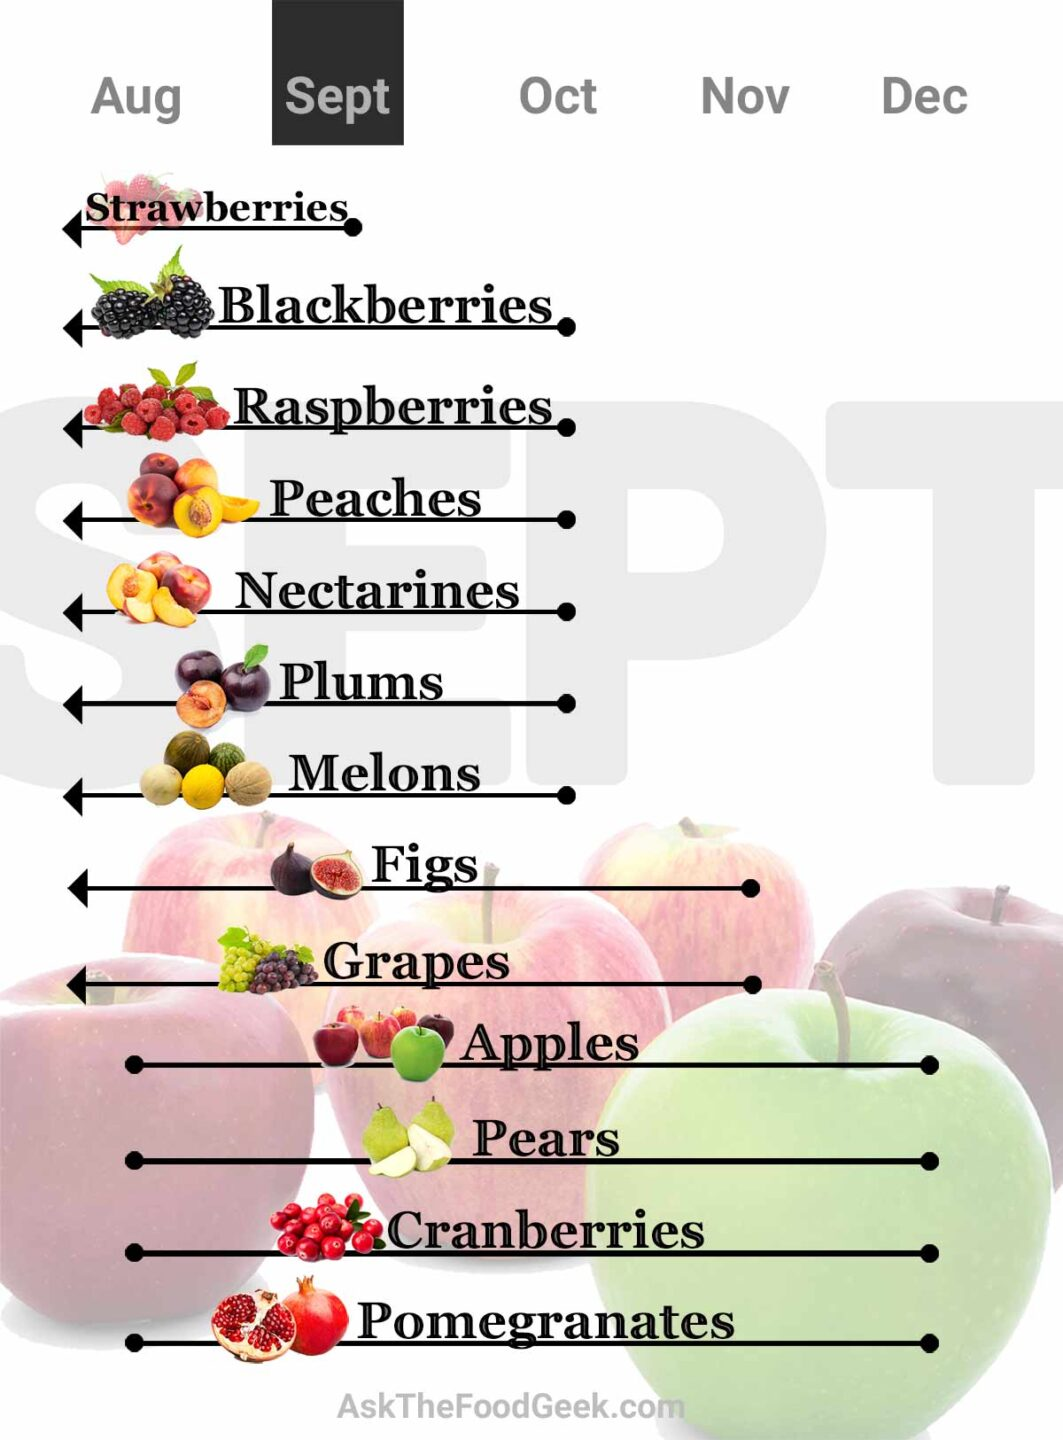 Chart of fruit in season for Septembert: strawberries, blackberries, raspberries, peaches, nectarines, plums, melons, figs, grapes, apples, pears, cranberries and pomegranates.